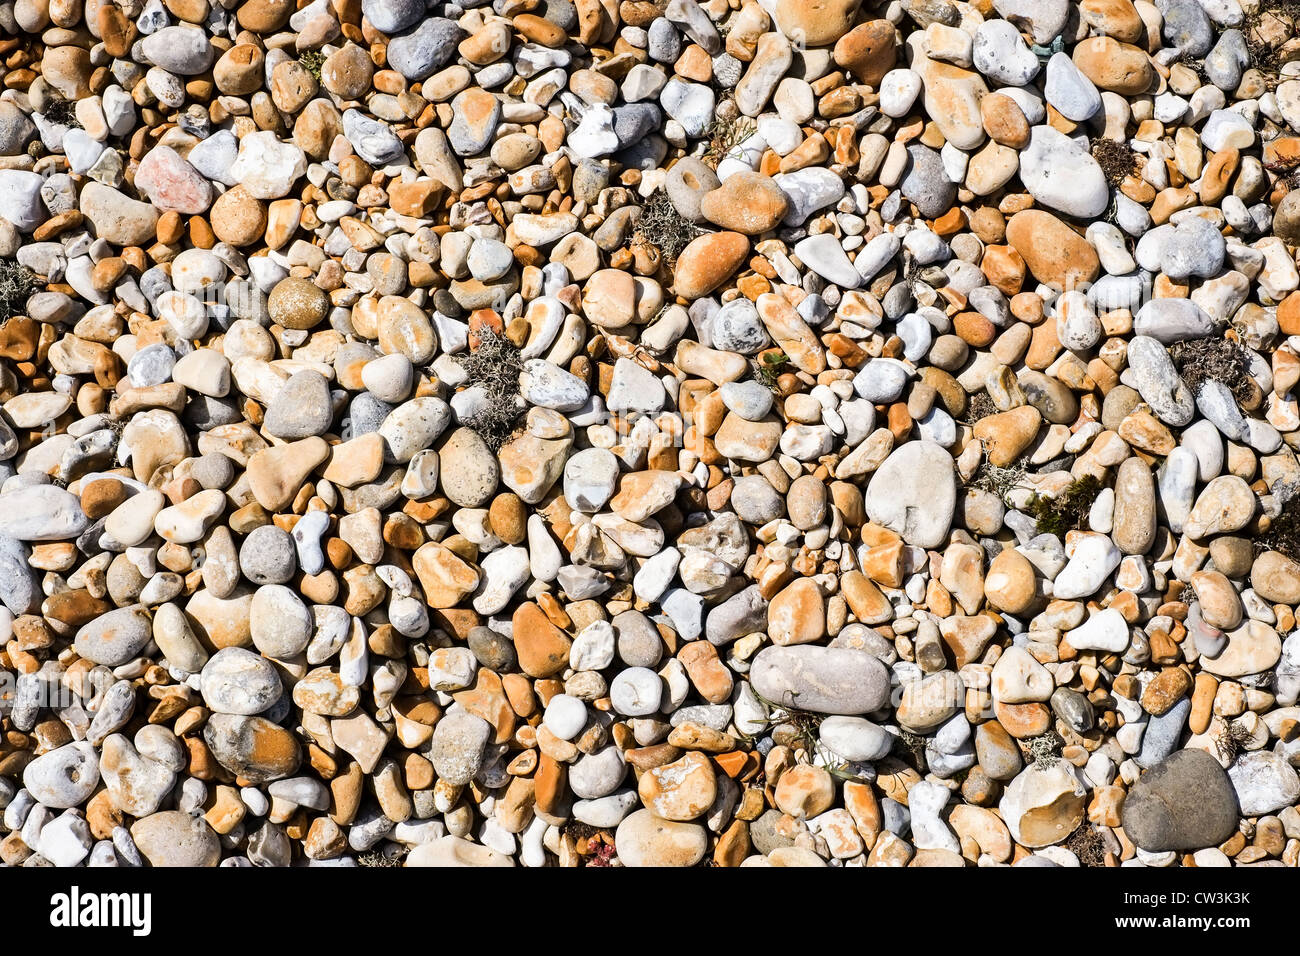 Pebbles on a stone beach complete with clumps of seagrass - Stock Image